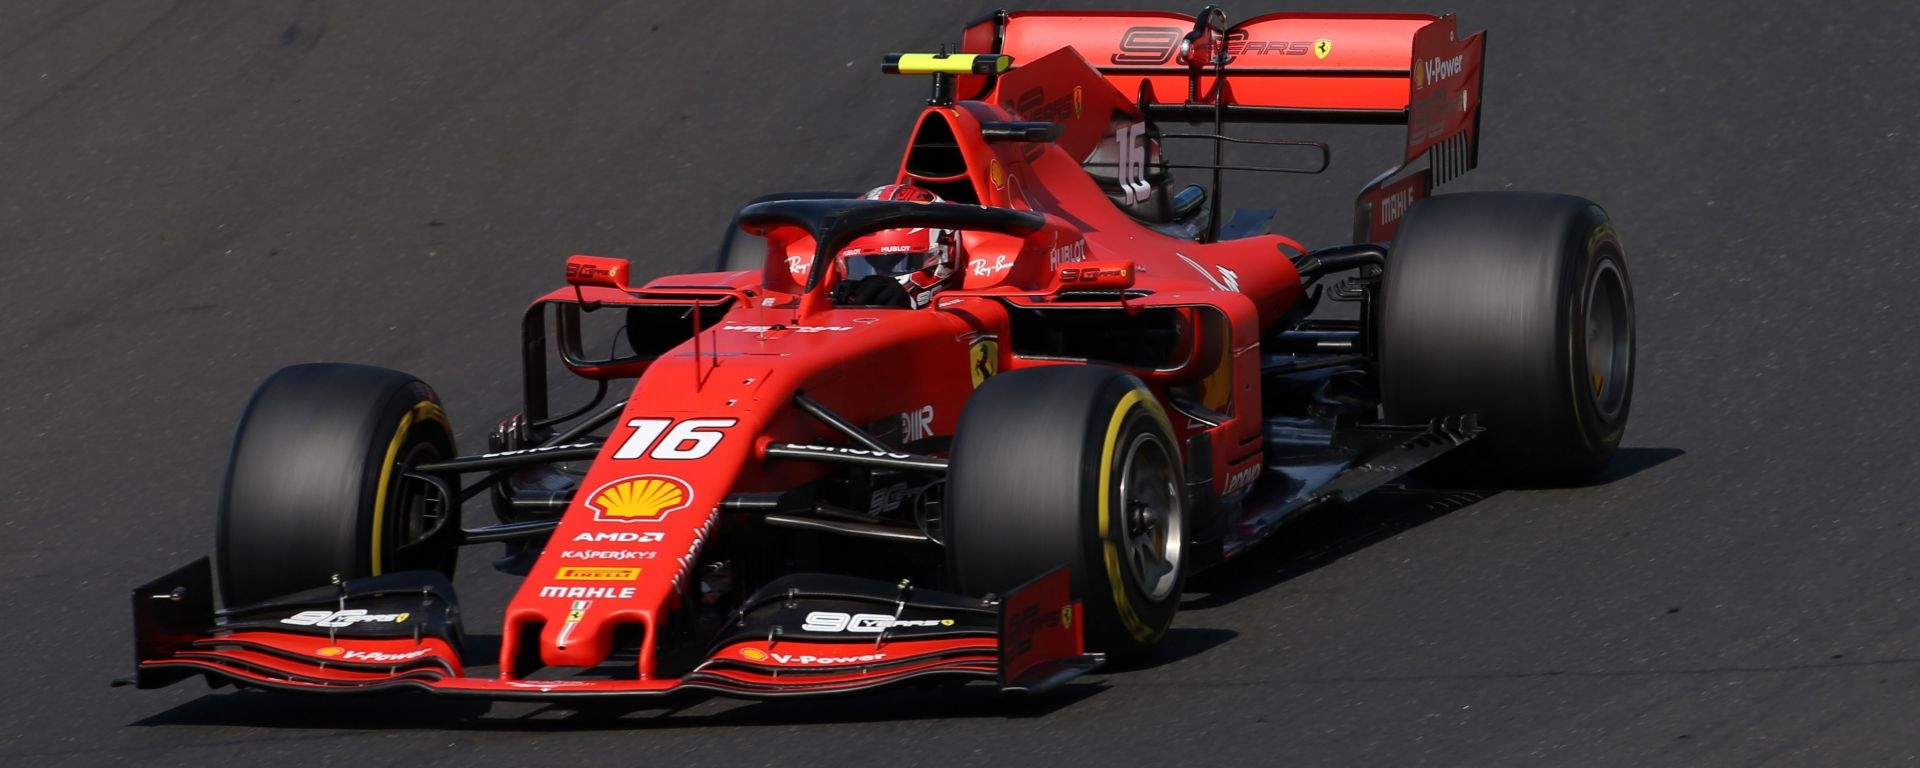 Charles Leclerc in pista all'Hungaroring con la Ferrari